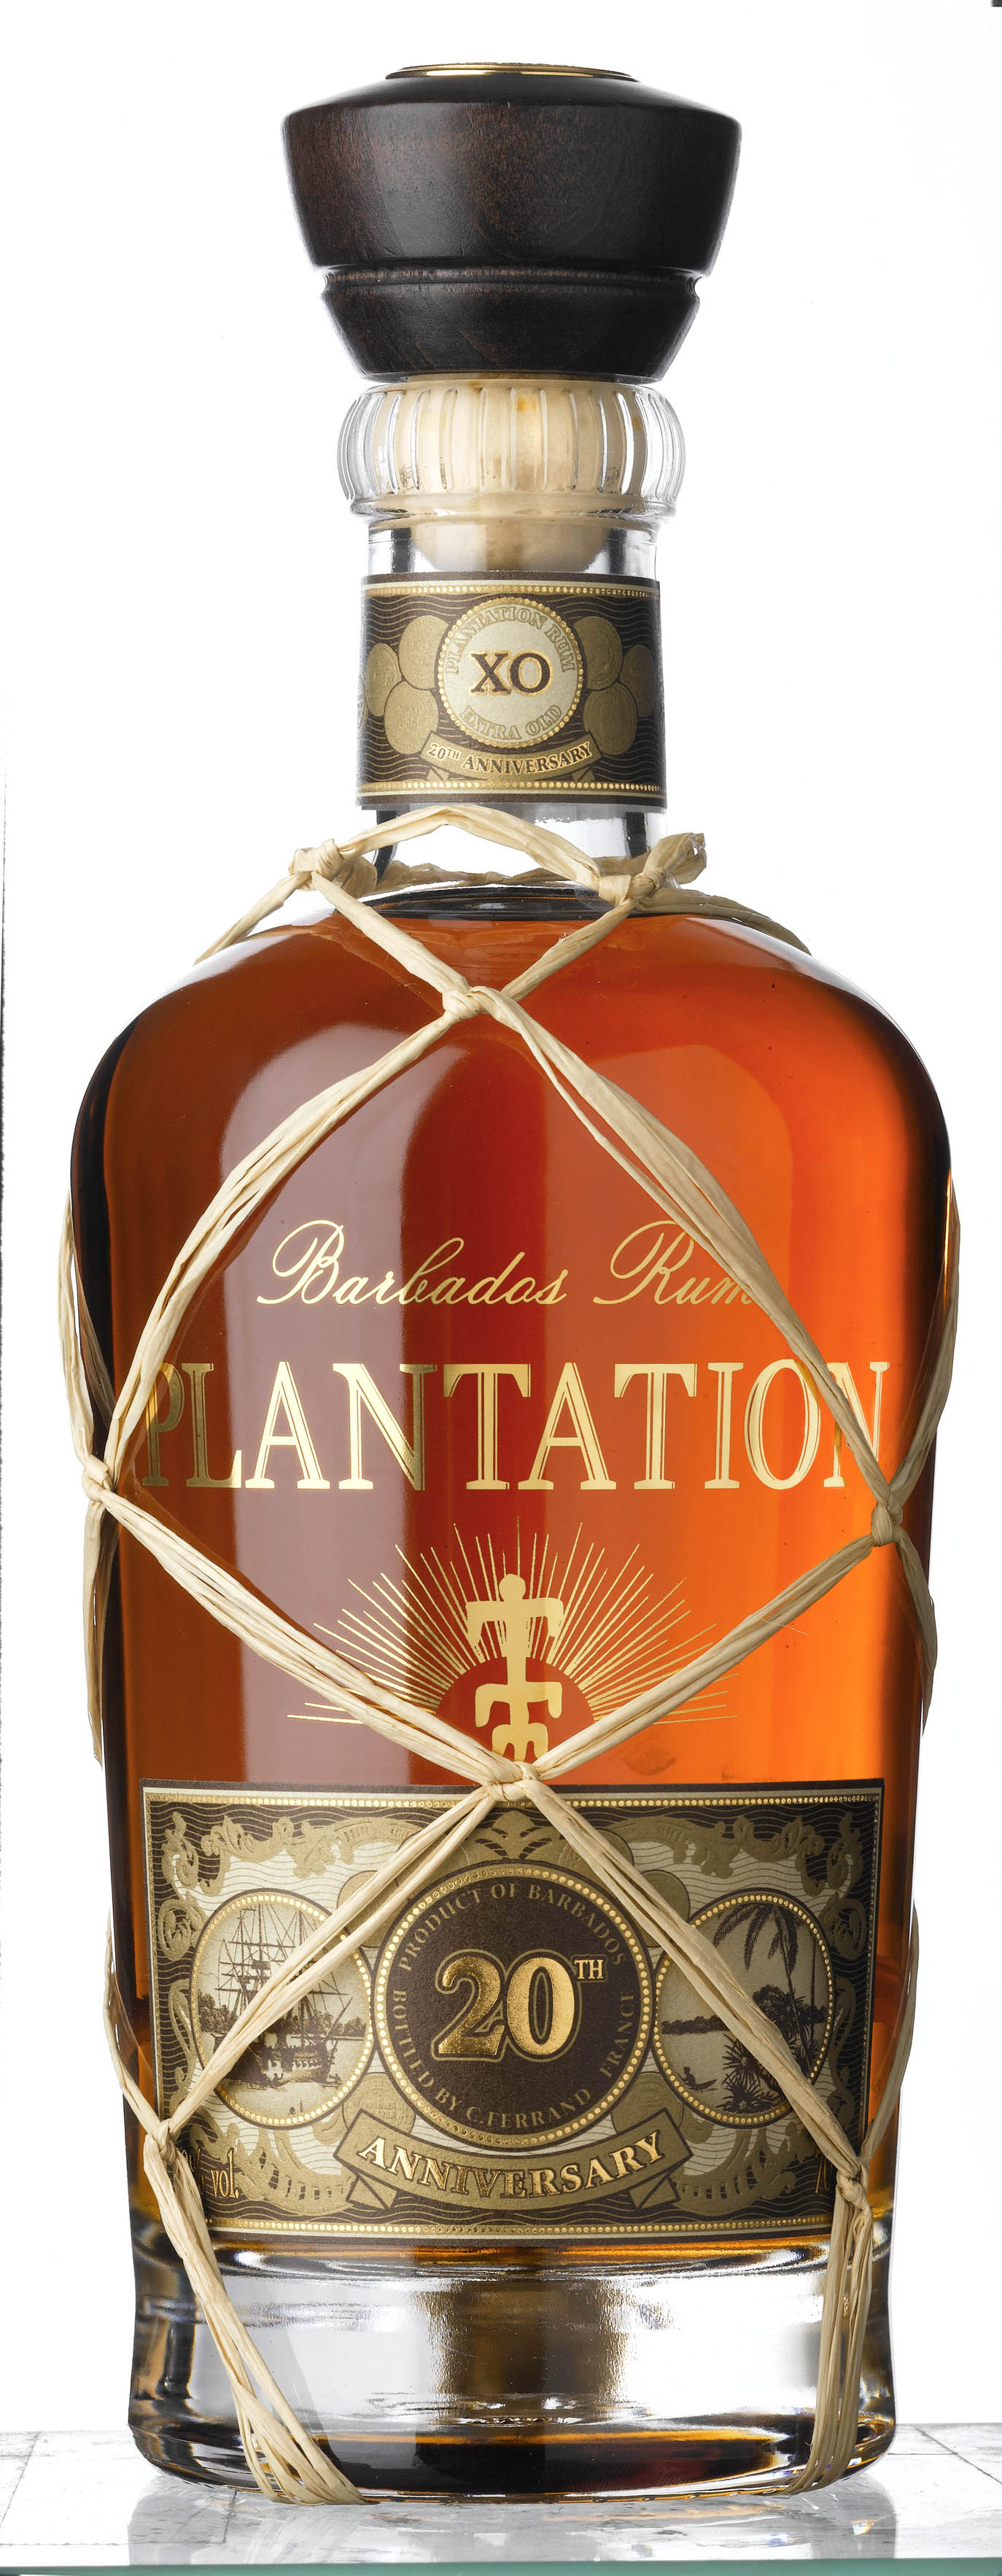 Plantation Barbados Extra Old 20th Anniversary Rum Review Plantation Rum Lineup 2015 3 Stars White